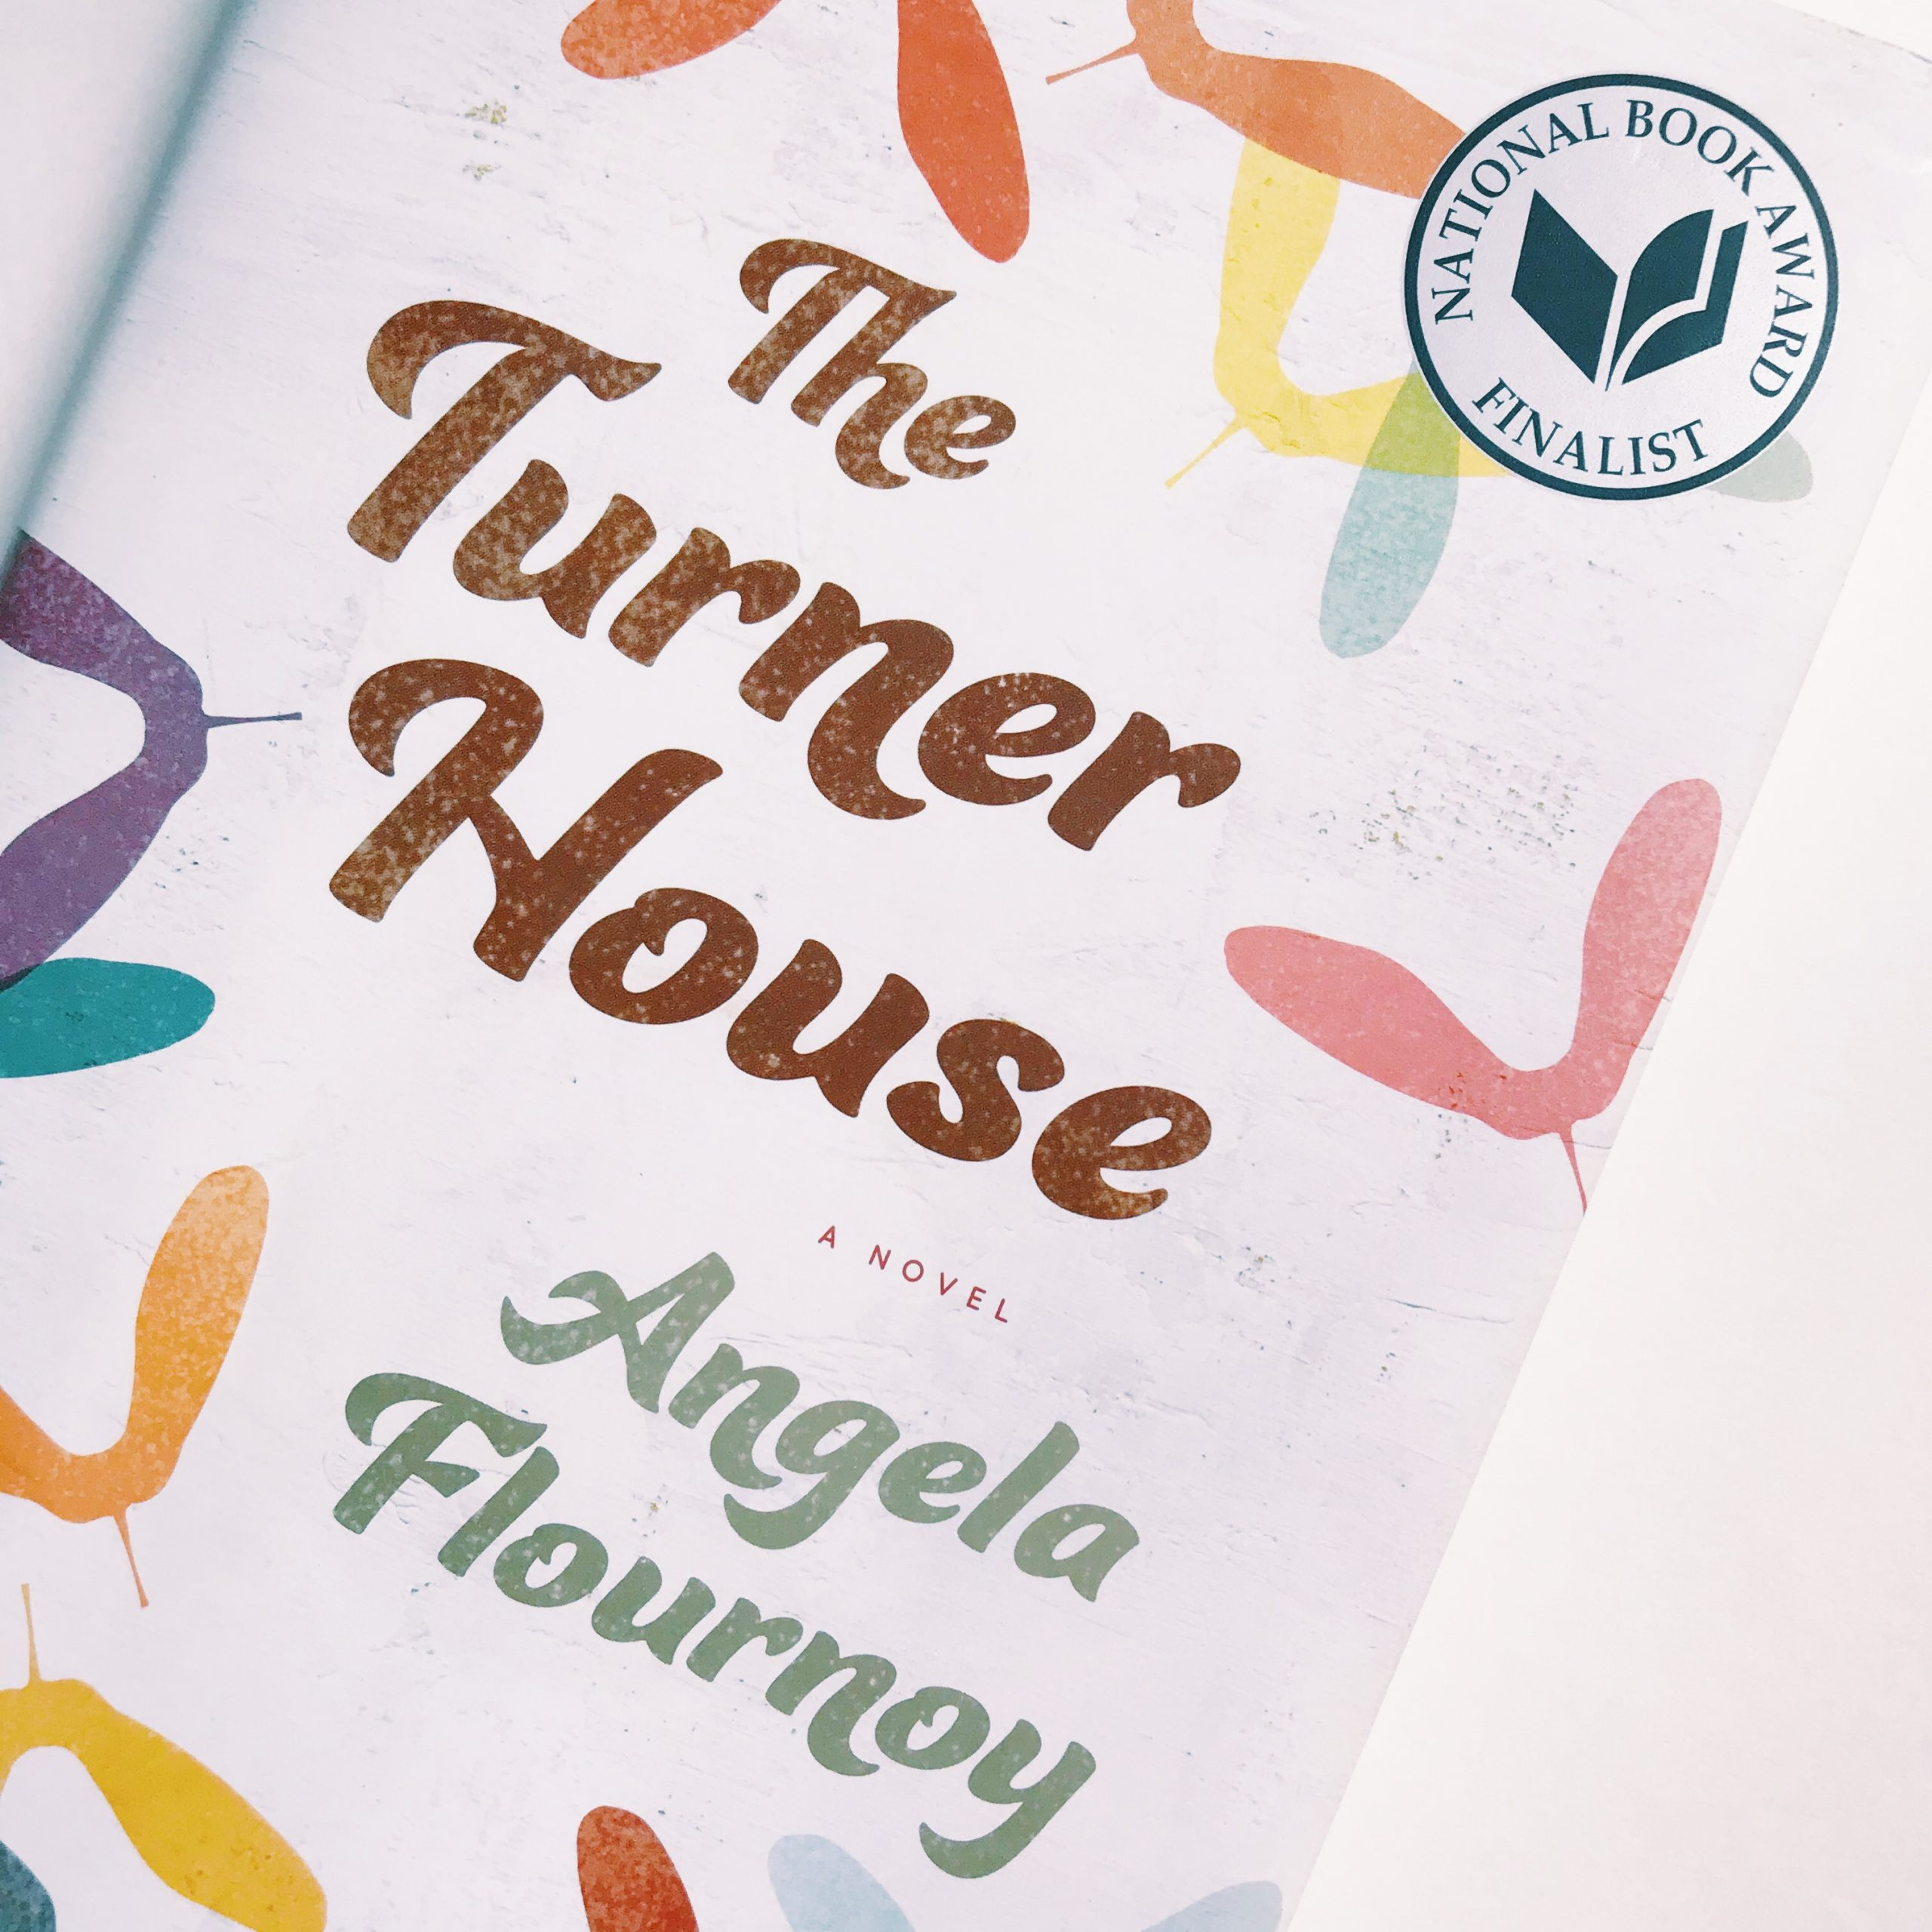 Book Review: The Turner House by Angela Flournoy